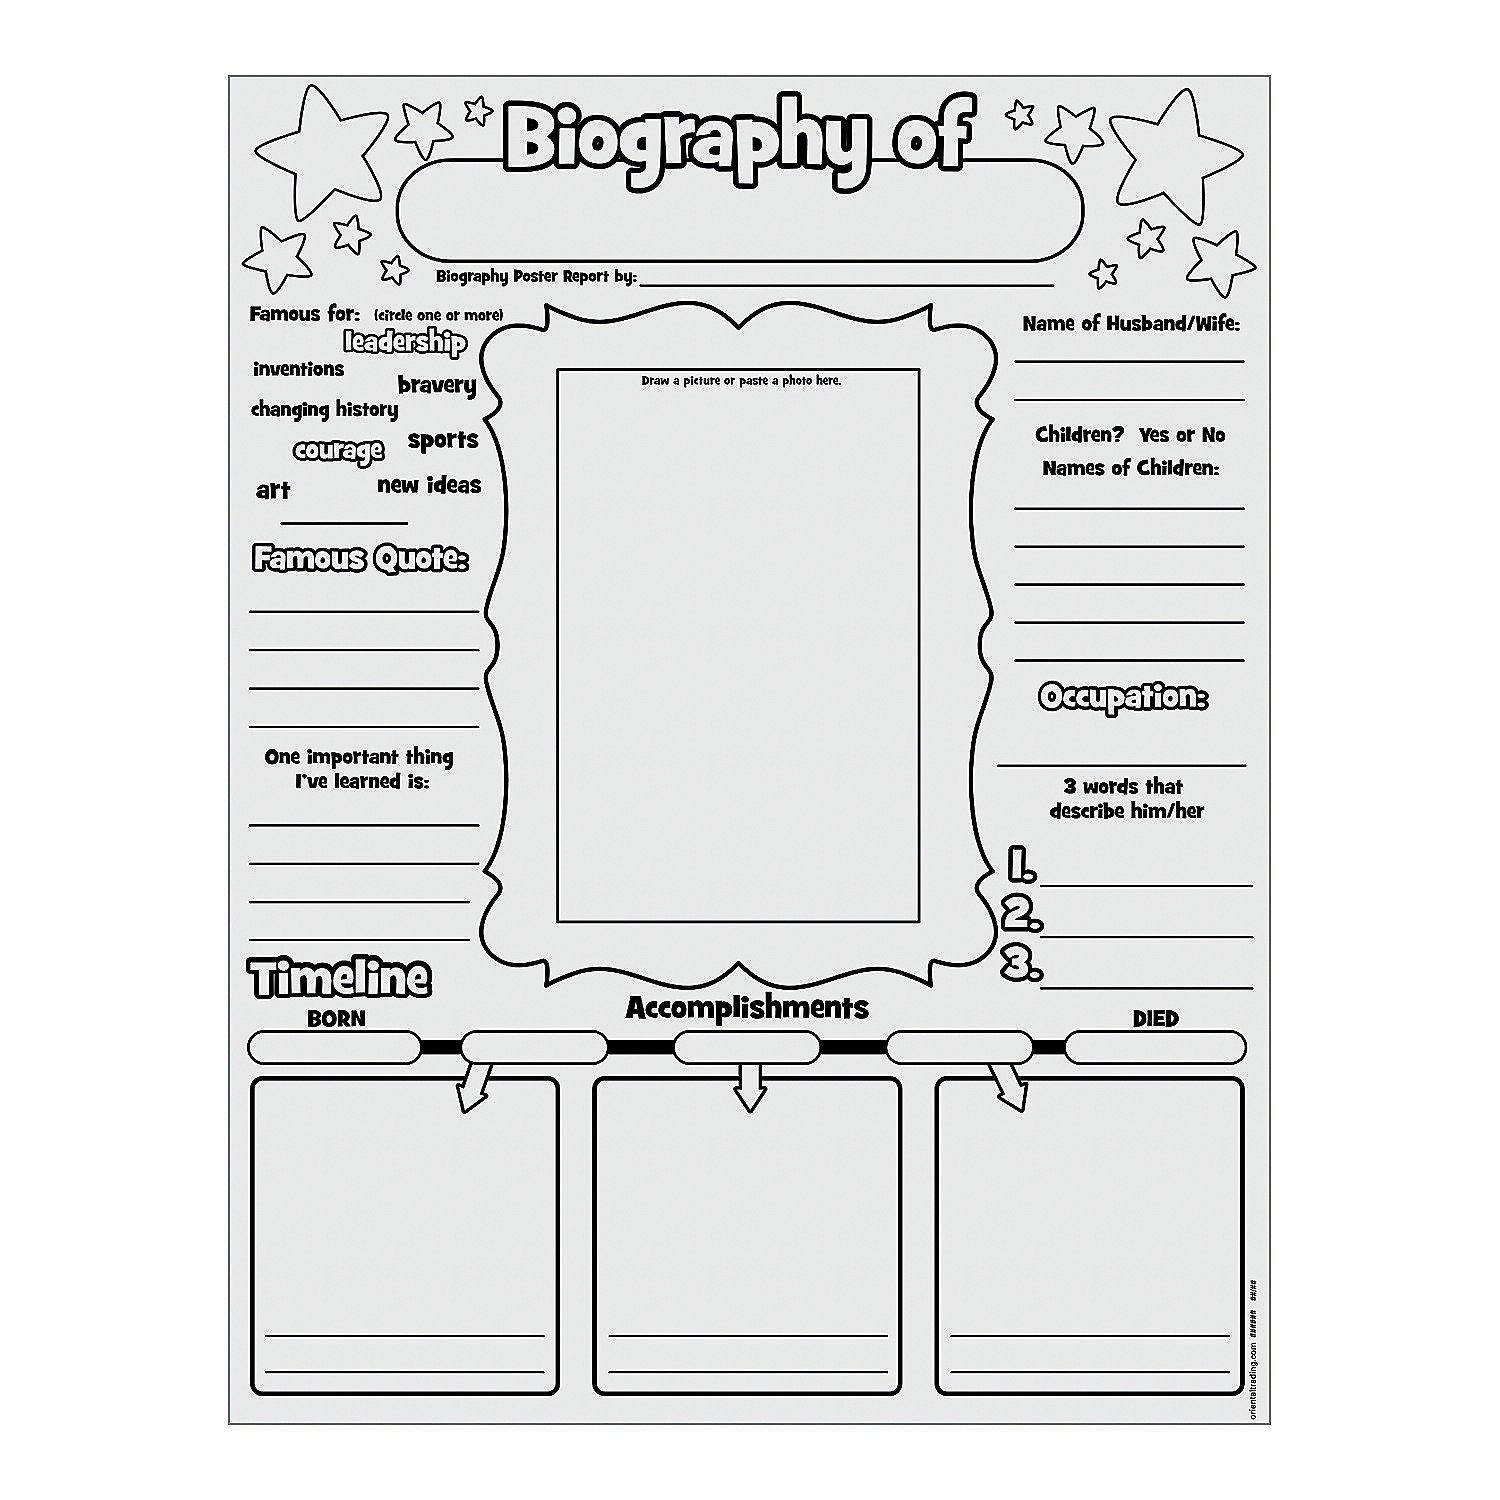 hight resolution of Biography Worksheet Elementary   Printable Worksheets and Activities for  Teachers